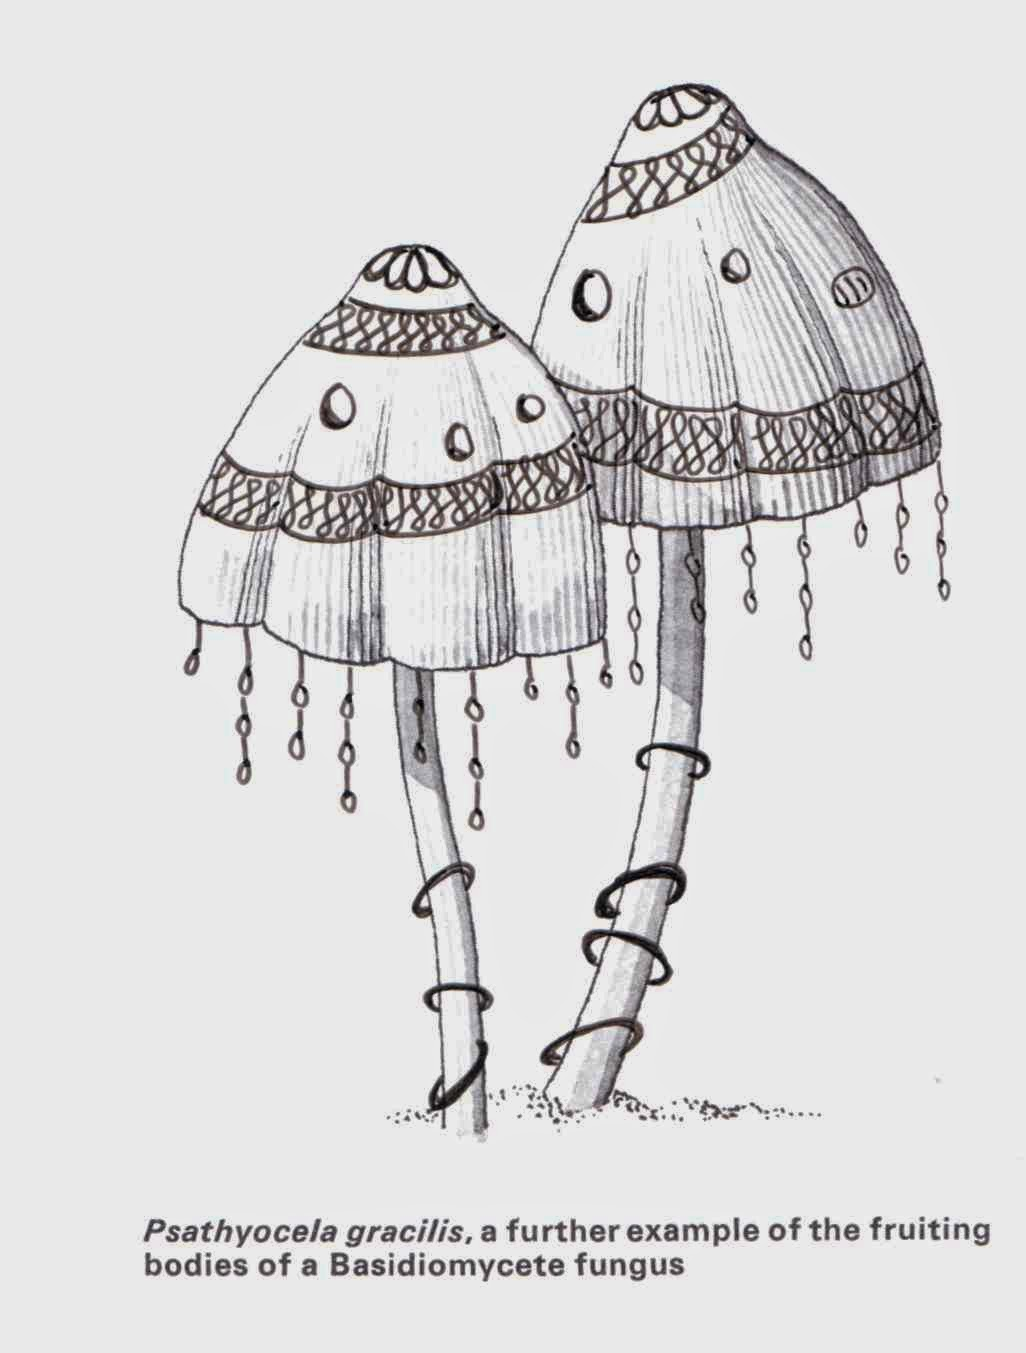 Zentangle drawn over illustration of two mushrooms